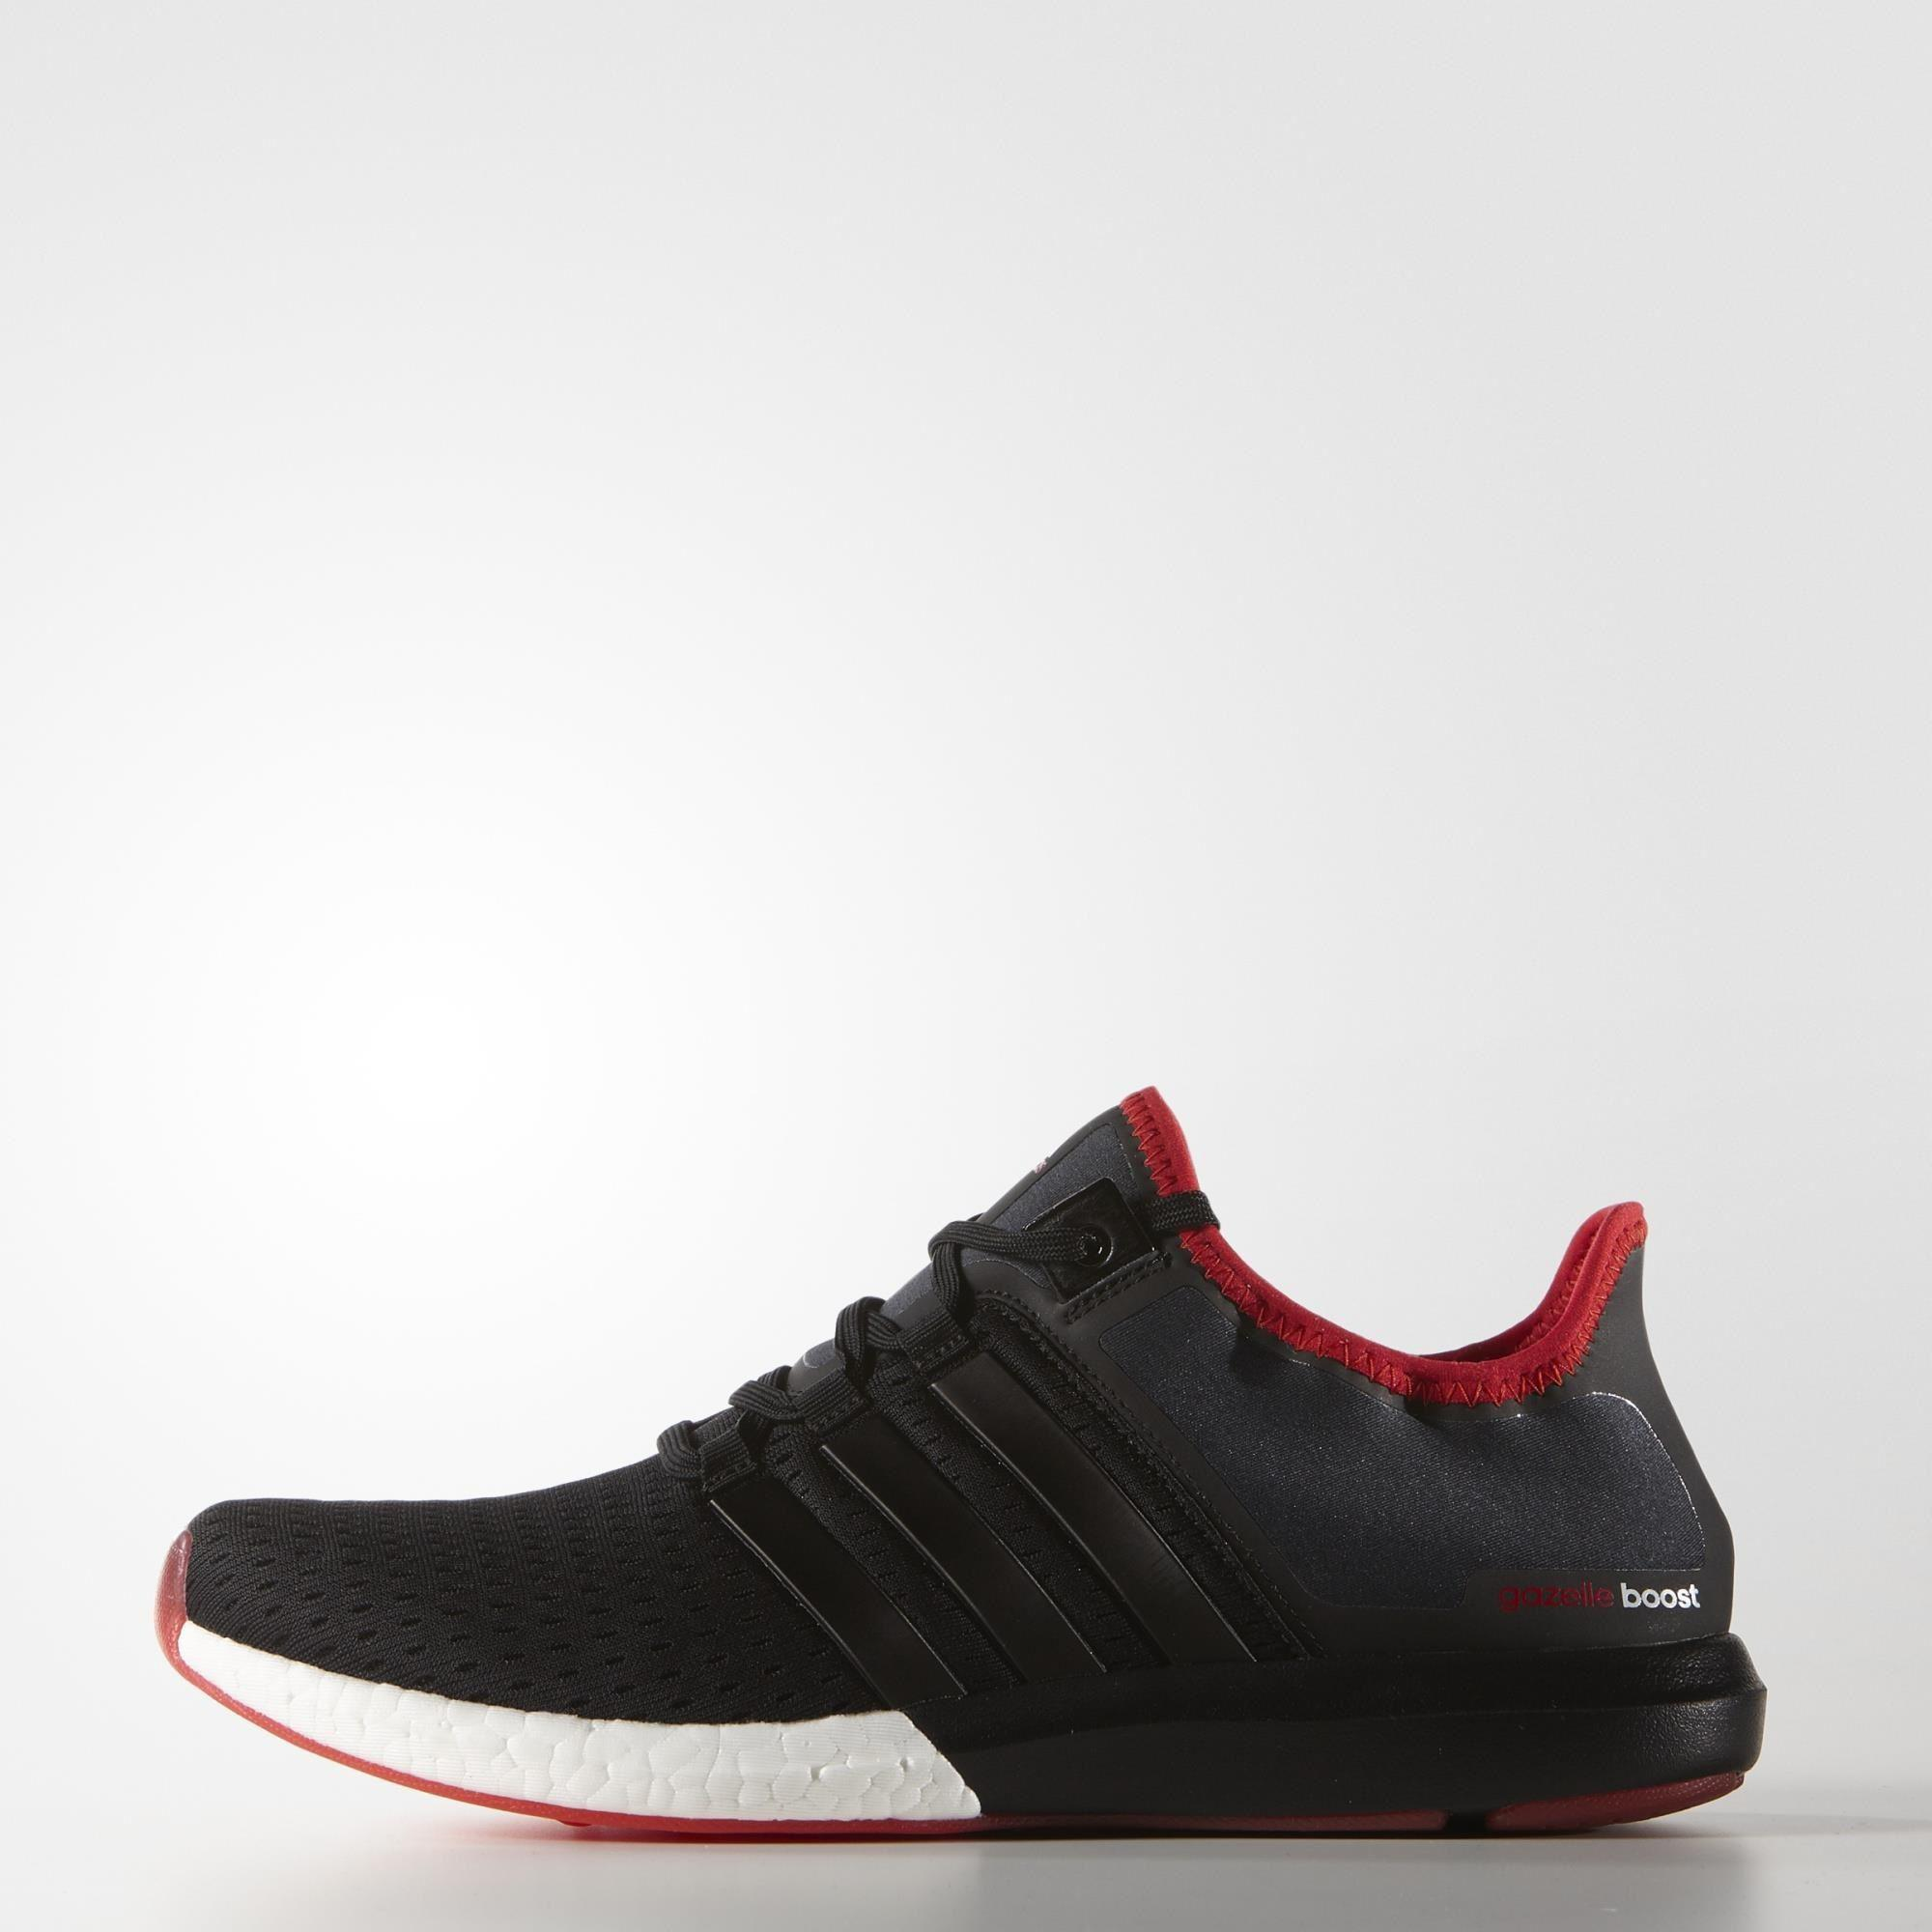 Adidas Mens Climachill Gazelle Boost Running Shoes - Core Black/Vivid Red